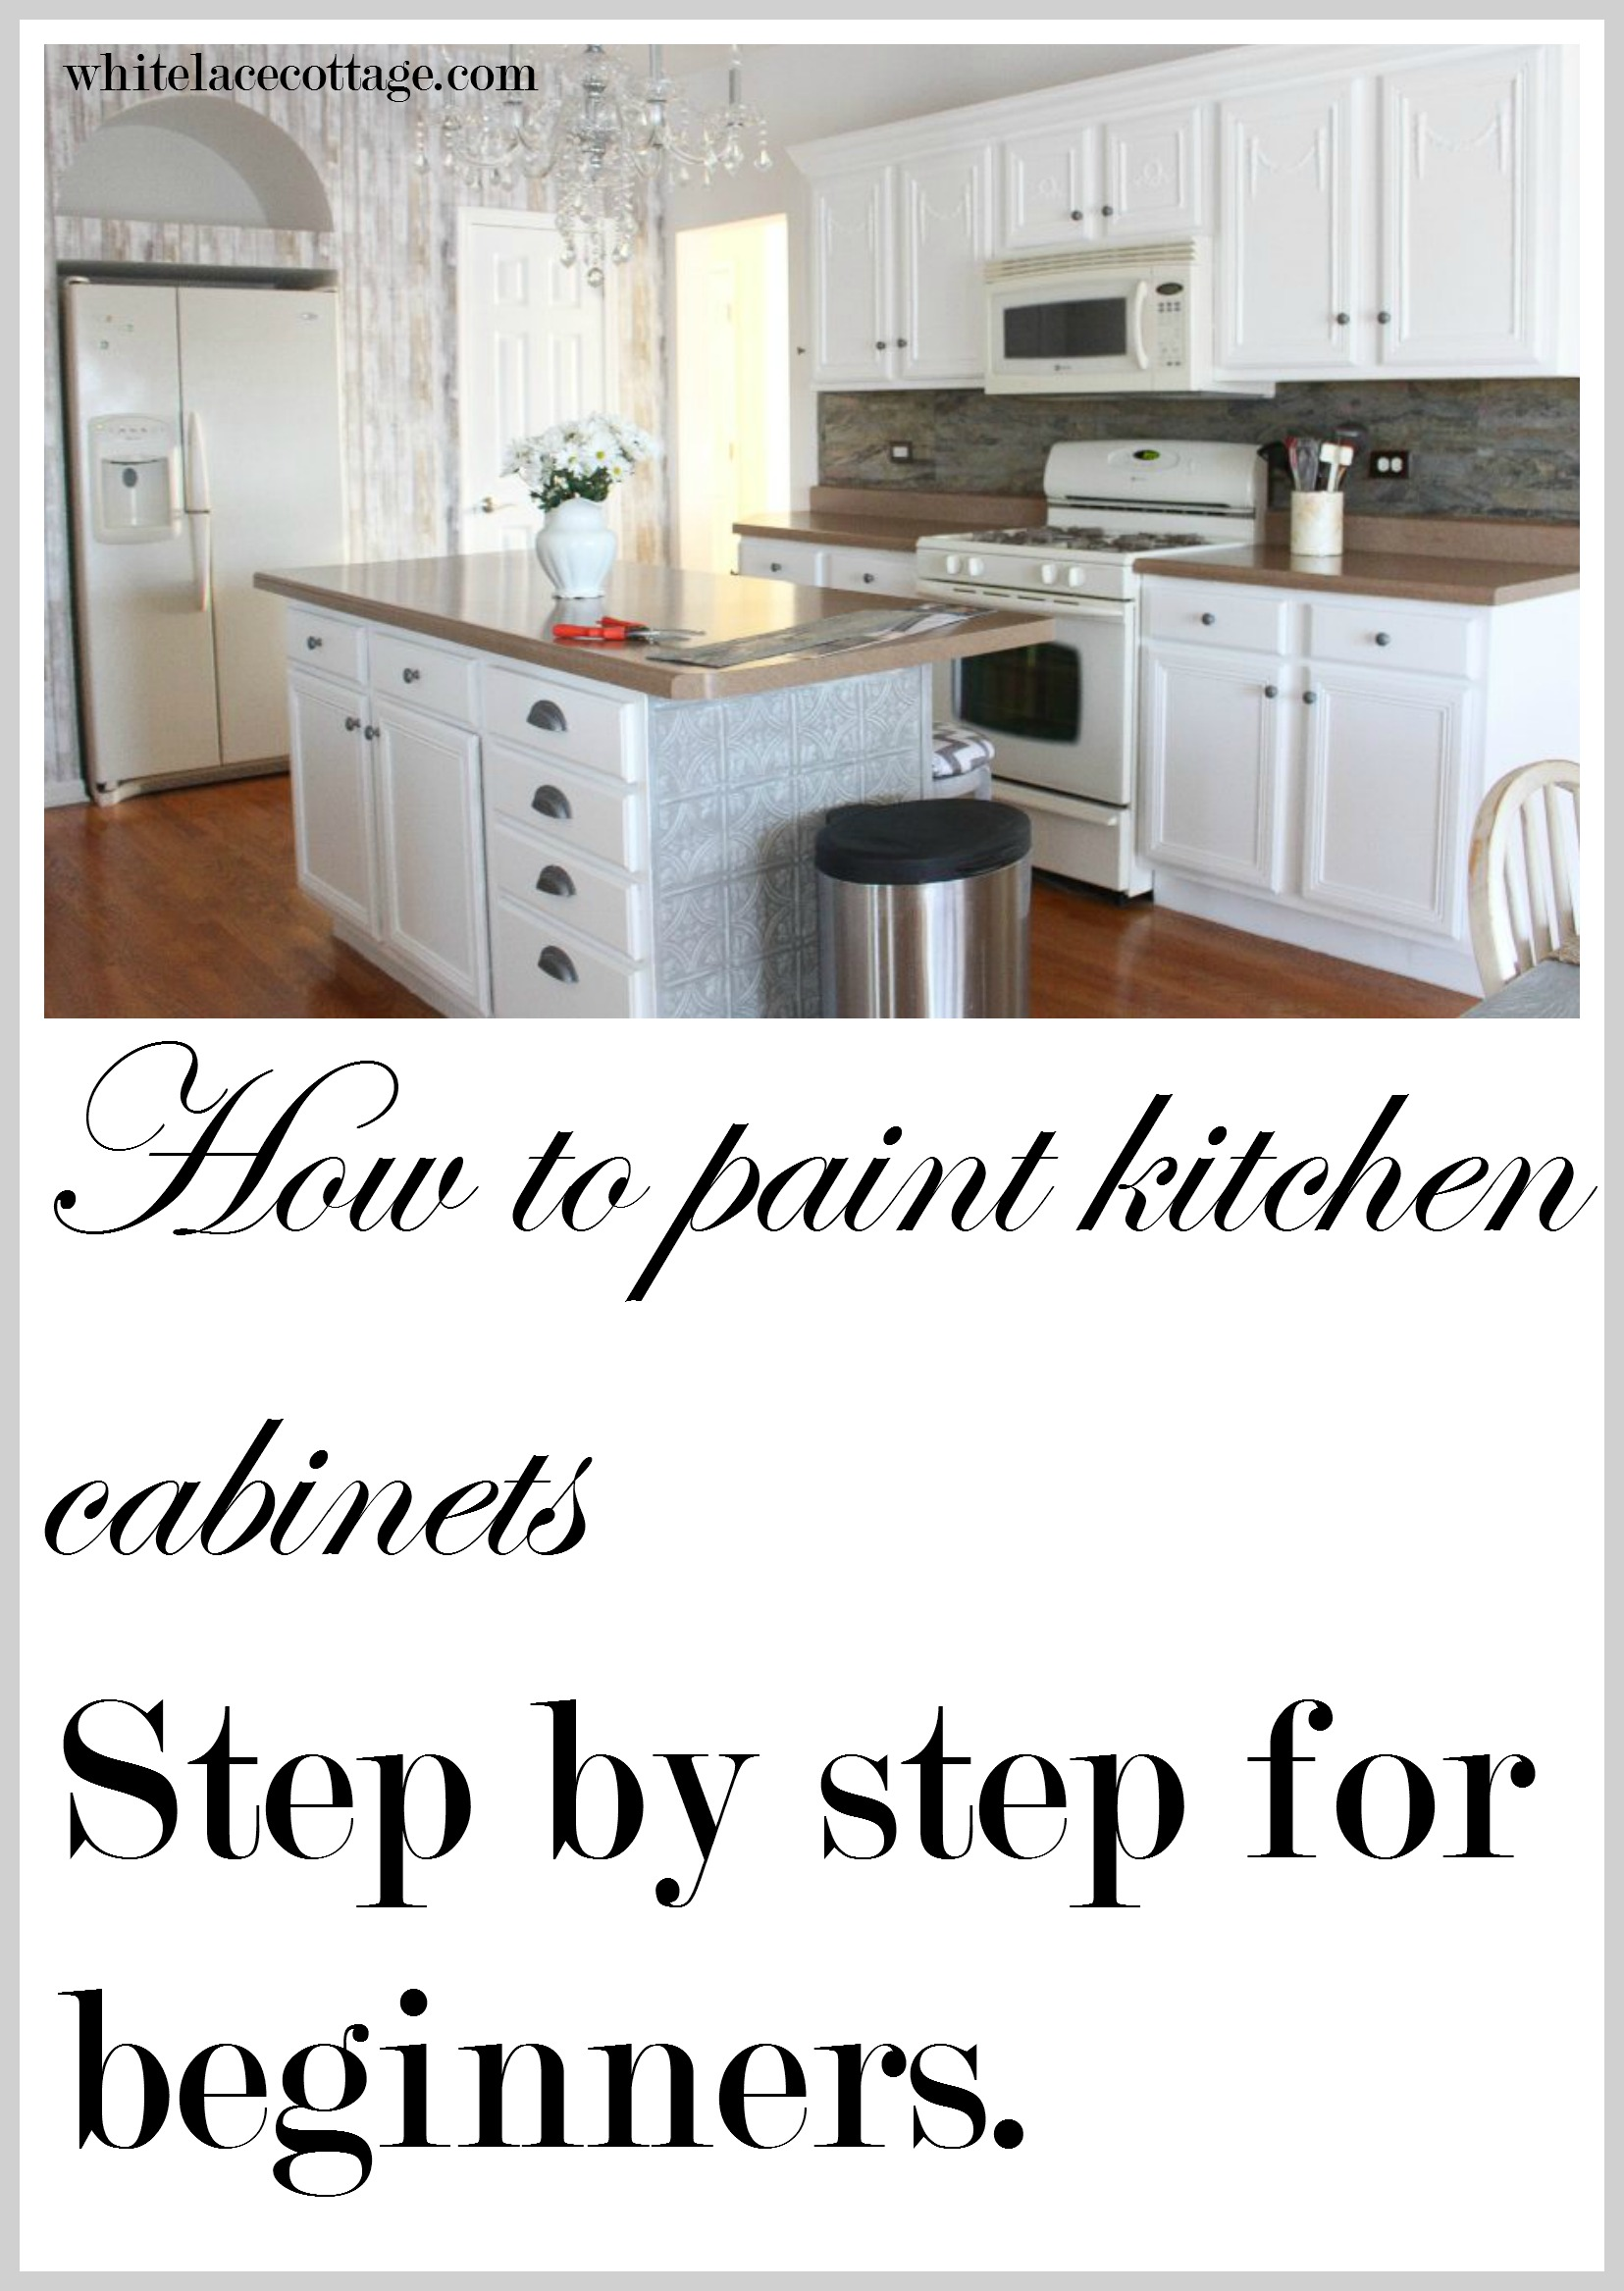 Painting Kitchen Cabinets How To Step By Step Anne P Makeup And More